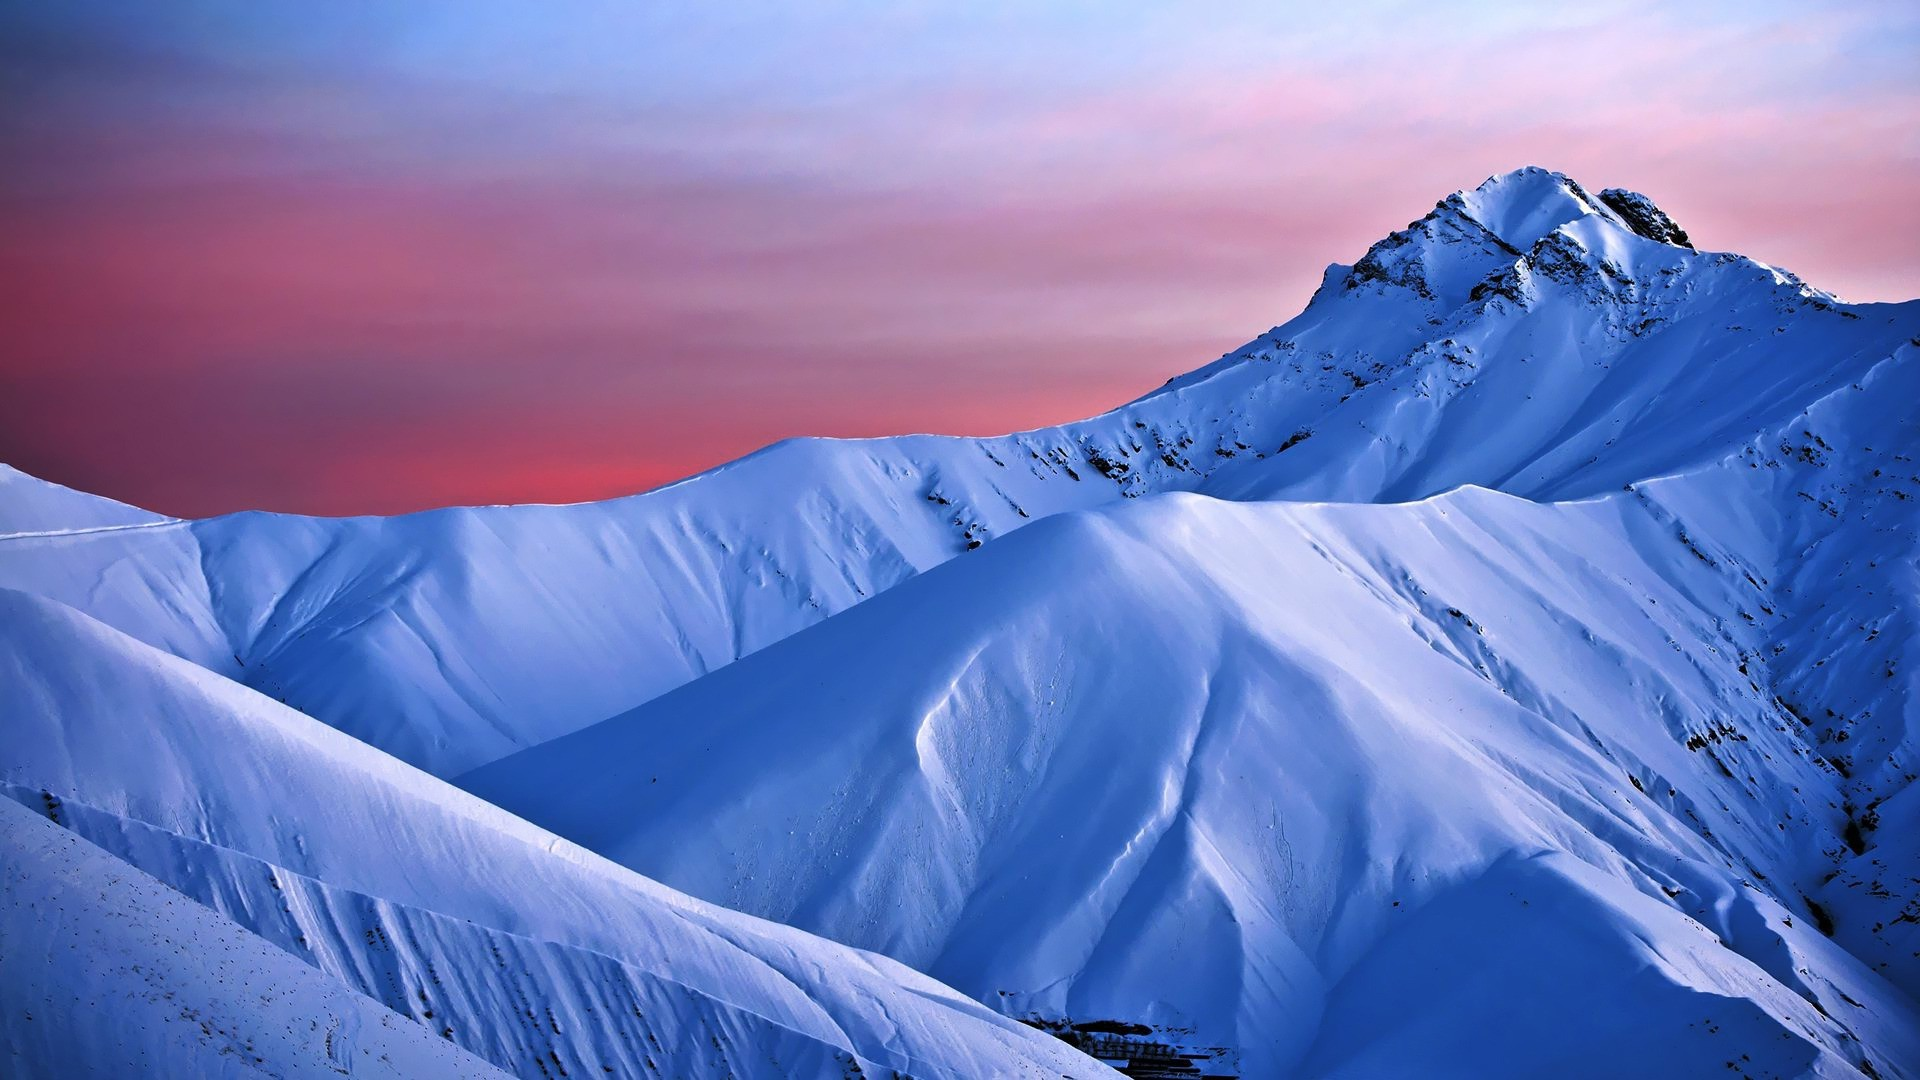 Res: 1920x1080, Snowy Mountains Backgrounds Download Free - wallpaper.wiki